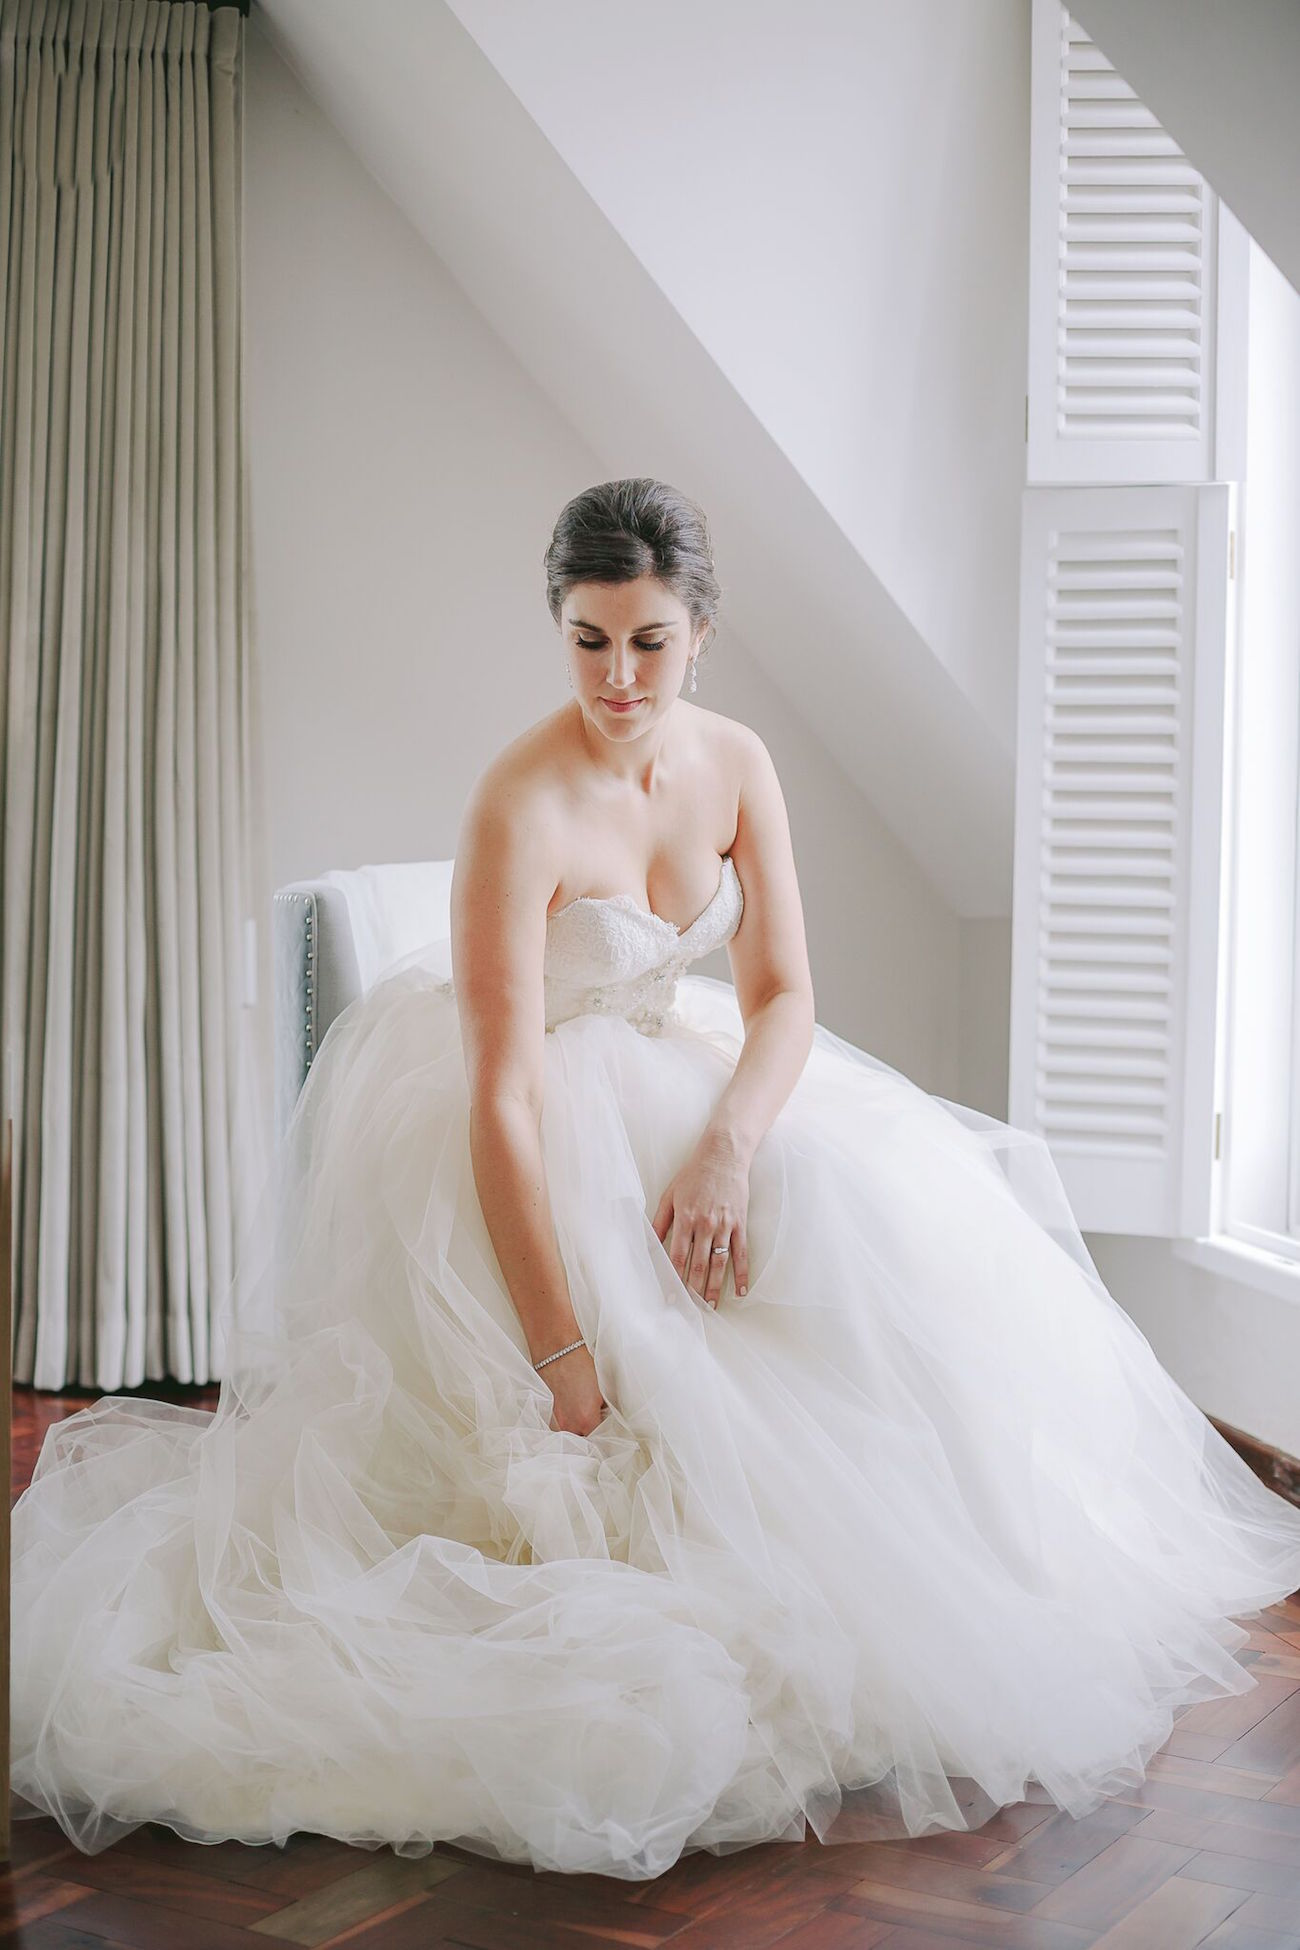 Maggie Sottero Wedding Dress | Credit: Jani B & Bright and Beautiful